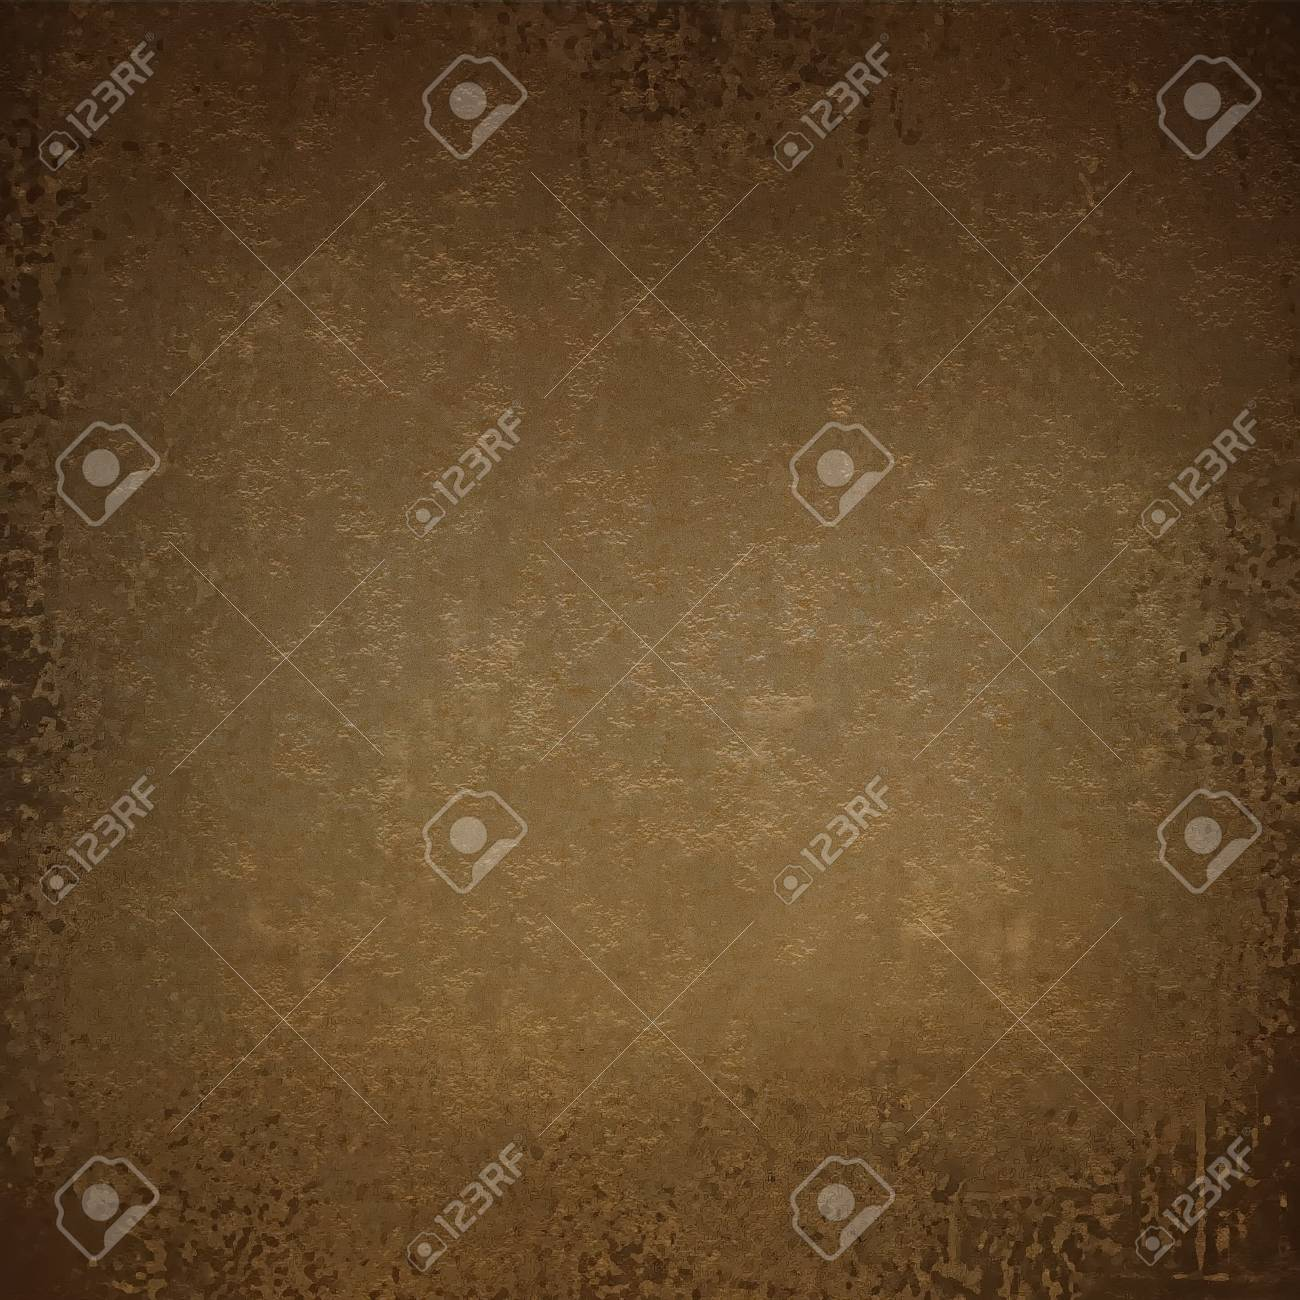 Vintage background design antique texture grunge the texture of antique texture grunge the texture of the walls vintage fabric canvas beautiful aged background background for business cards design for paper and reheart Image collections